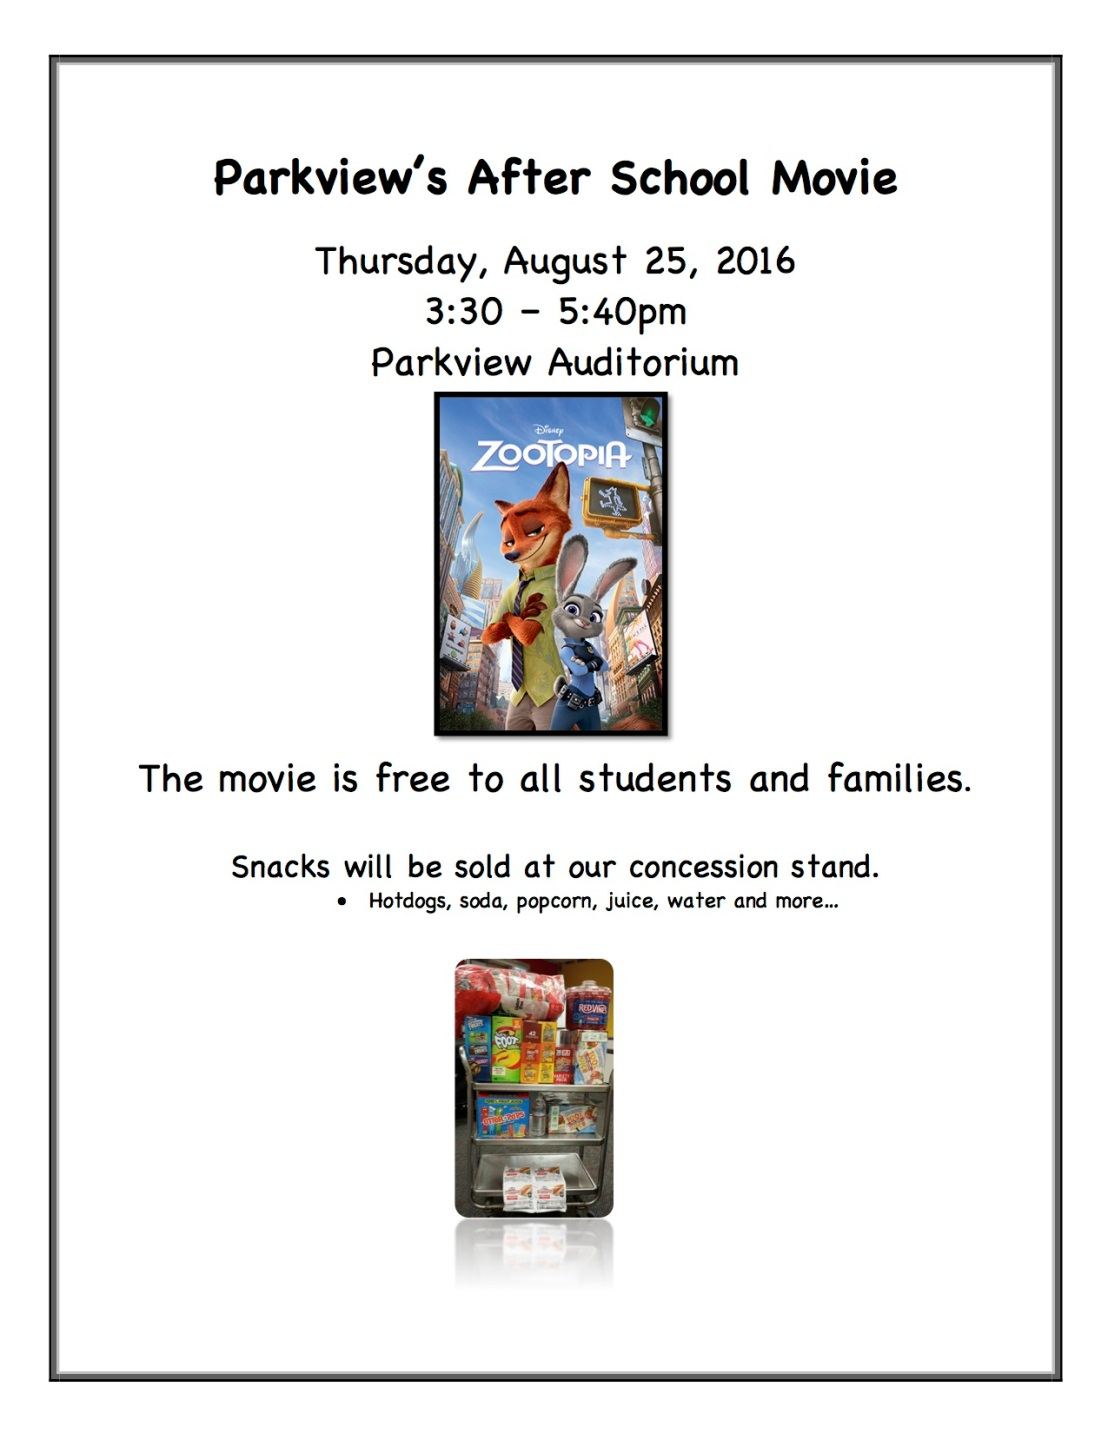 After School Movie copy